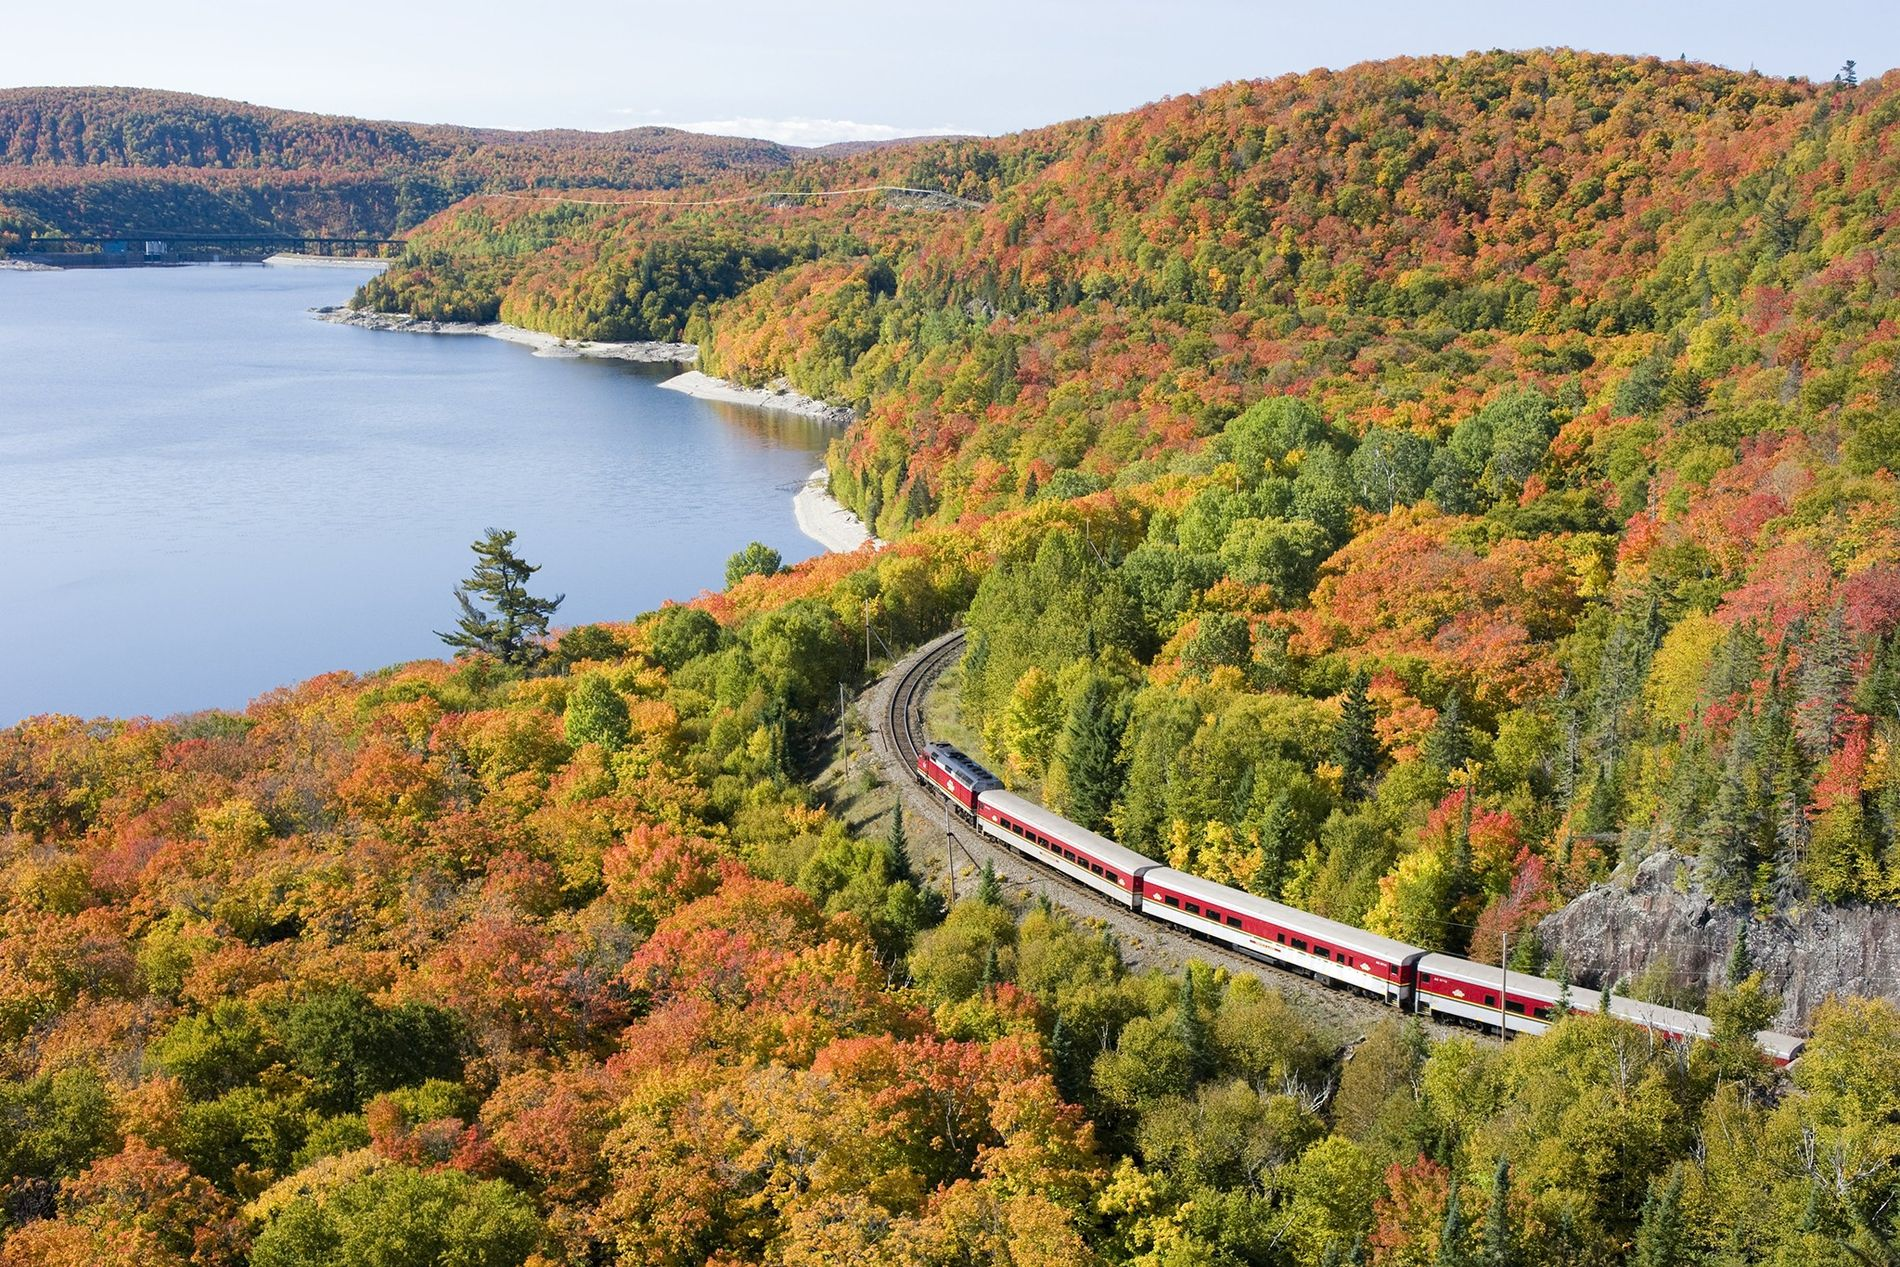 Explore the Agawa Canyon by train in summer and autumn to discover the area's spectacular scenery.